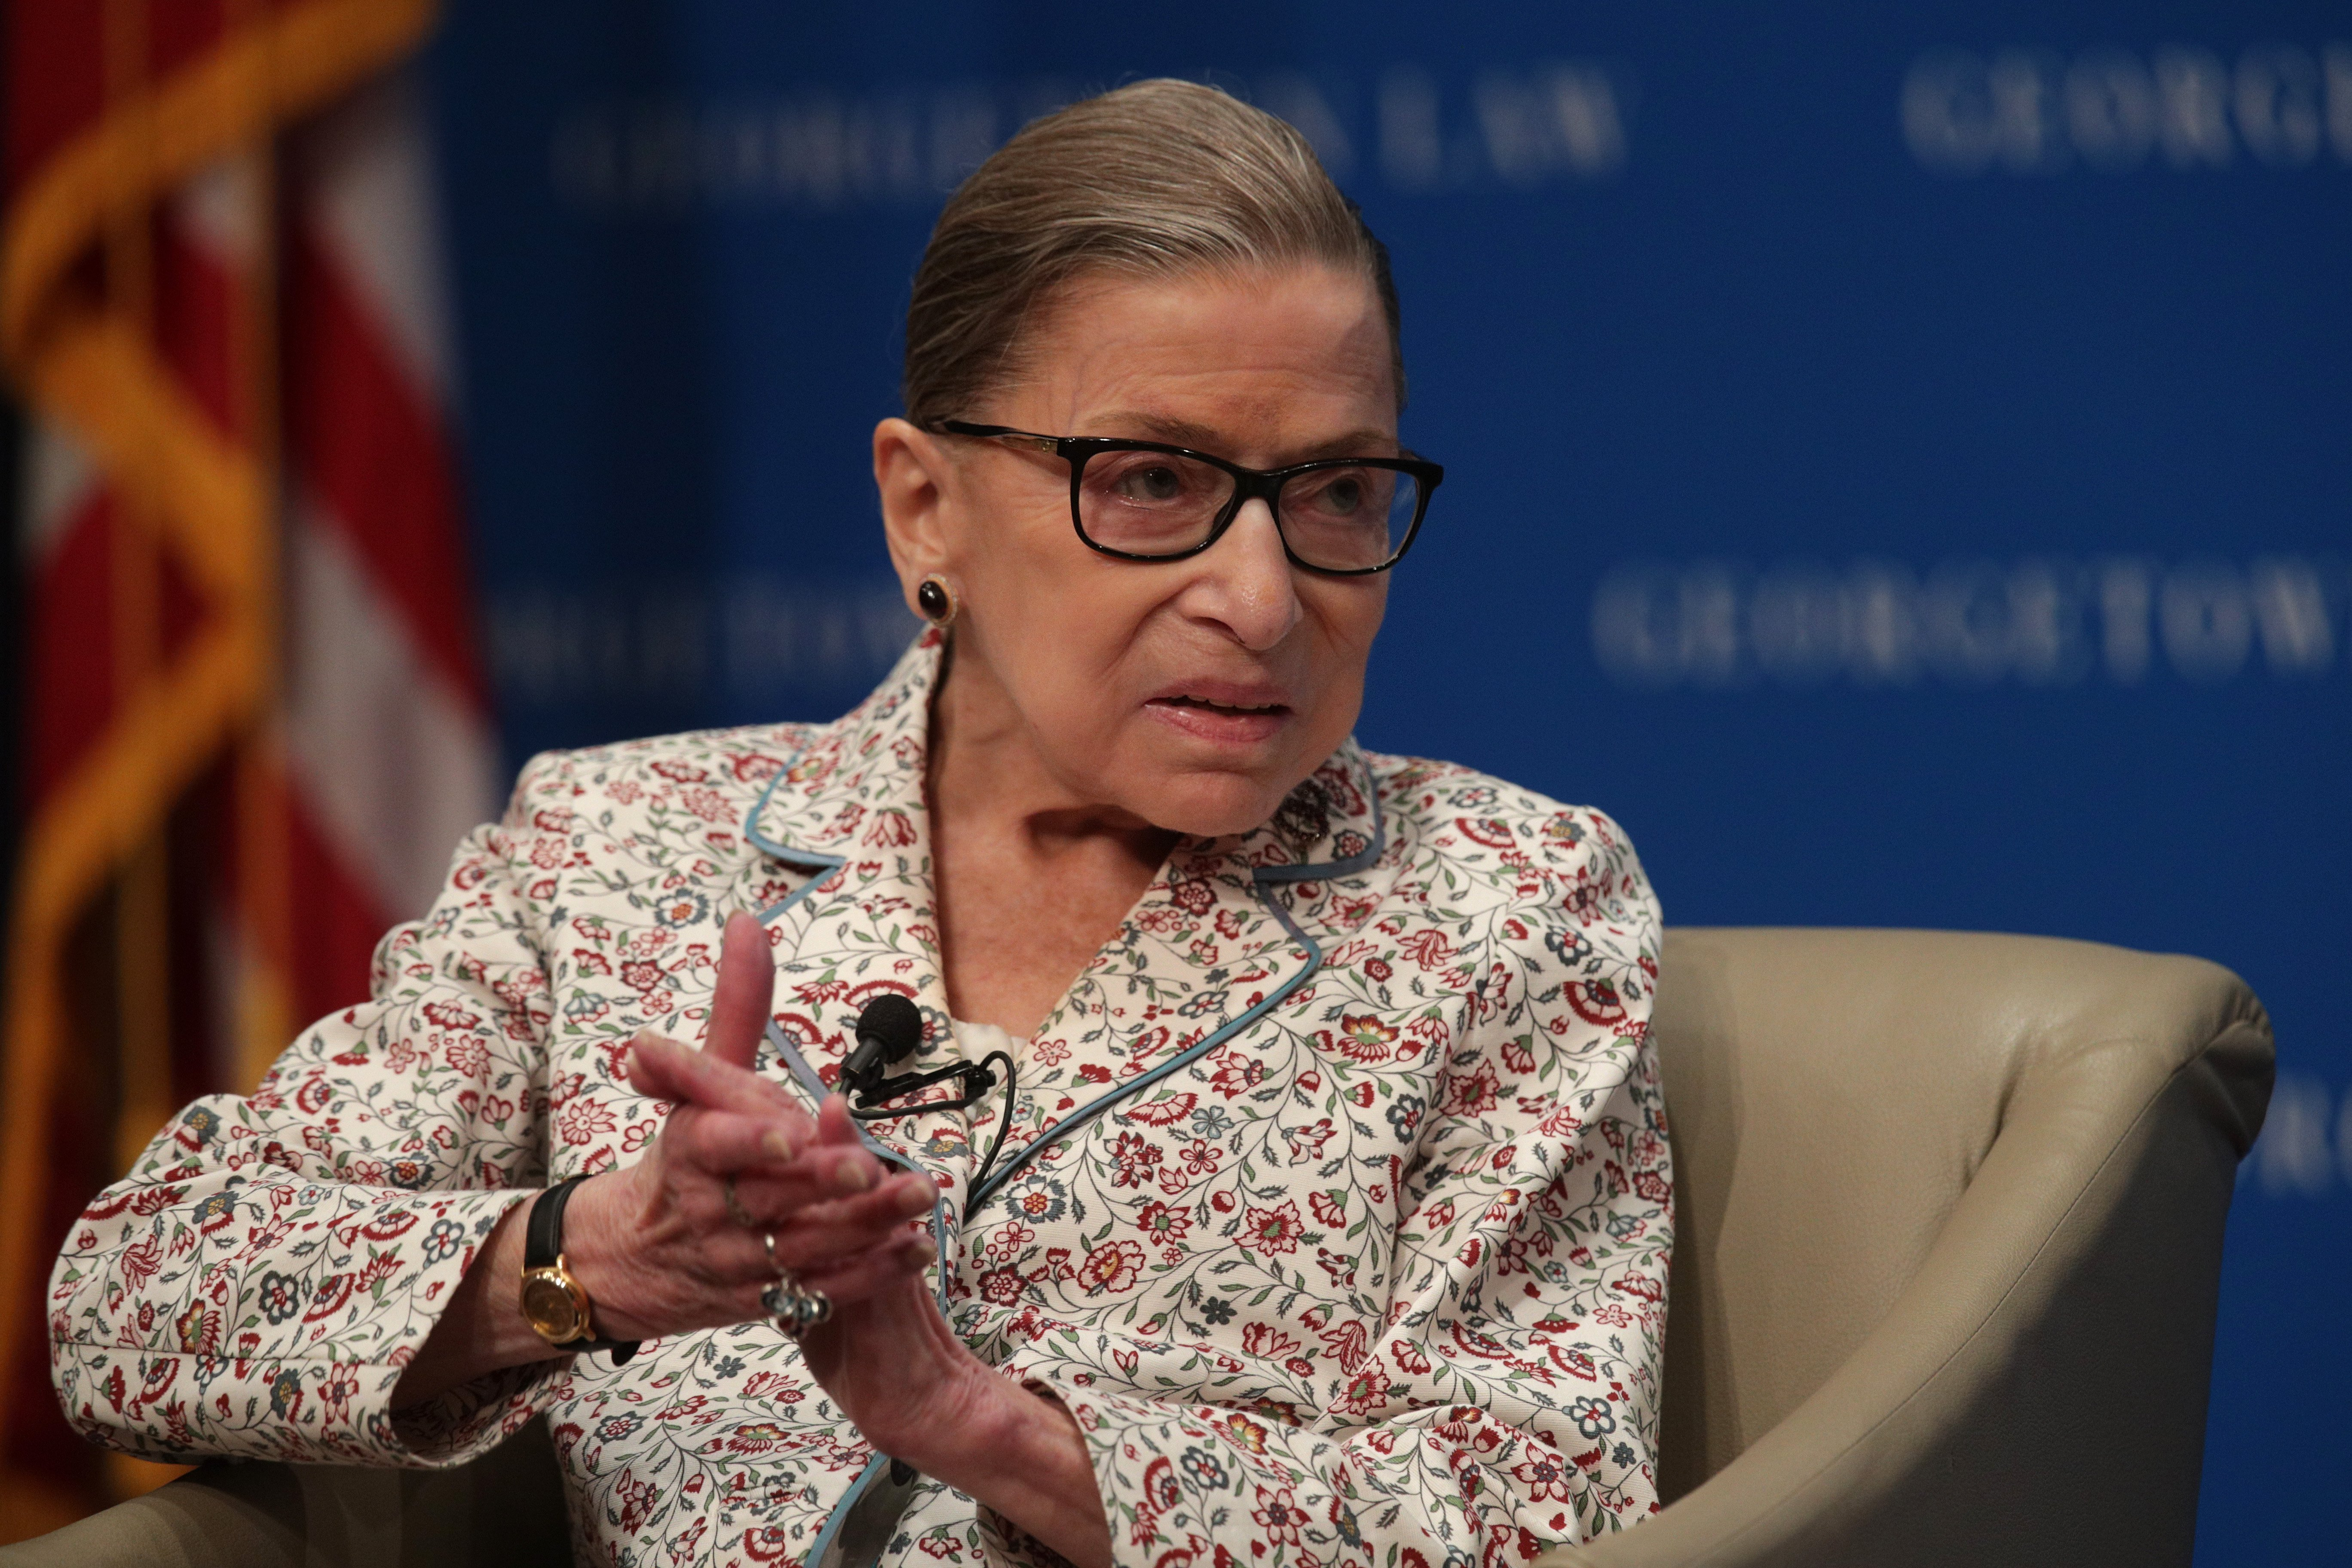 Supreme Court Associate Justice Ruth Bader Ginsburg participates in a discussion at Georgetown University Law Center July 2, 2019 in Washington, DC | Photo: Getty Images